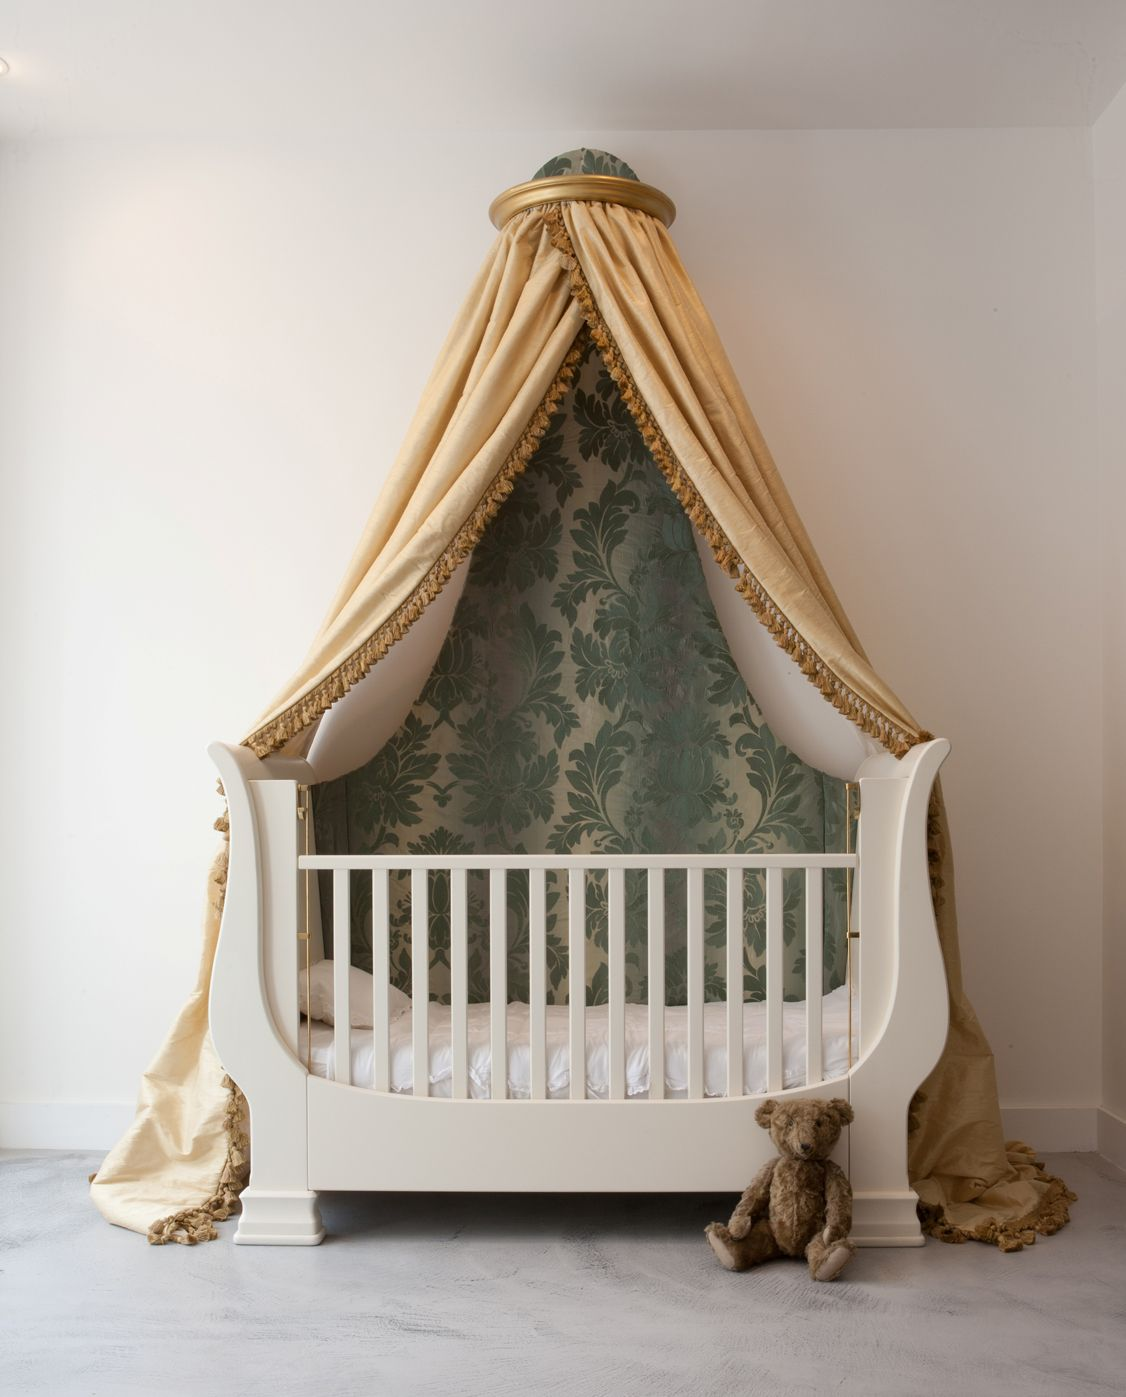 Simon Horn S Adaptable Cot Becomes A Bed And Then A Sofa As The